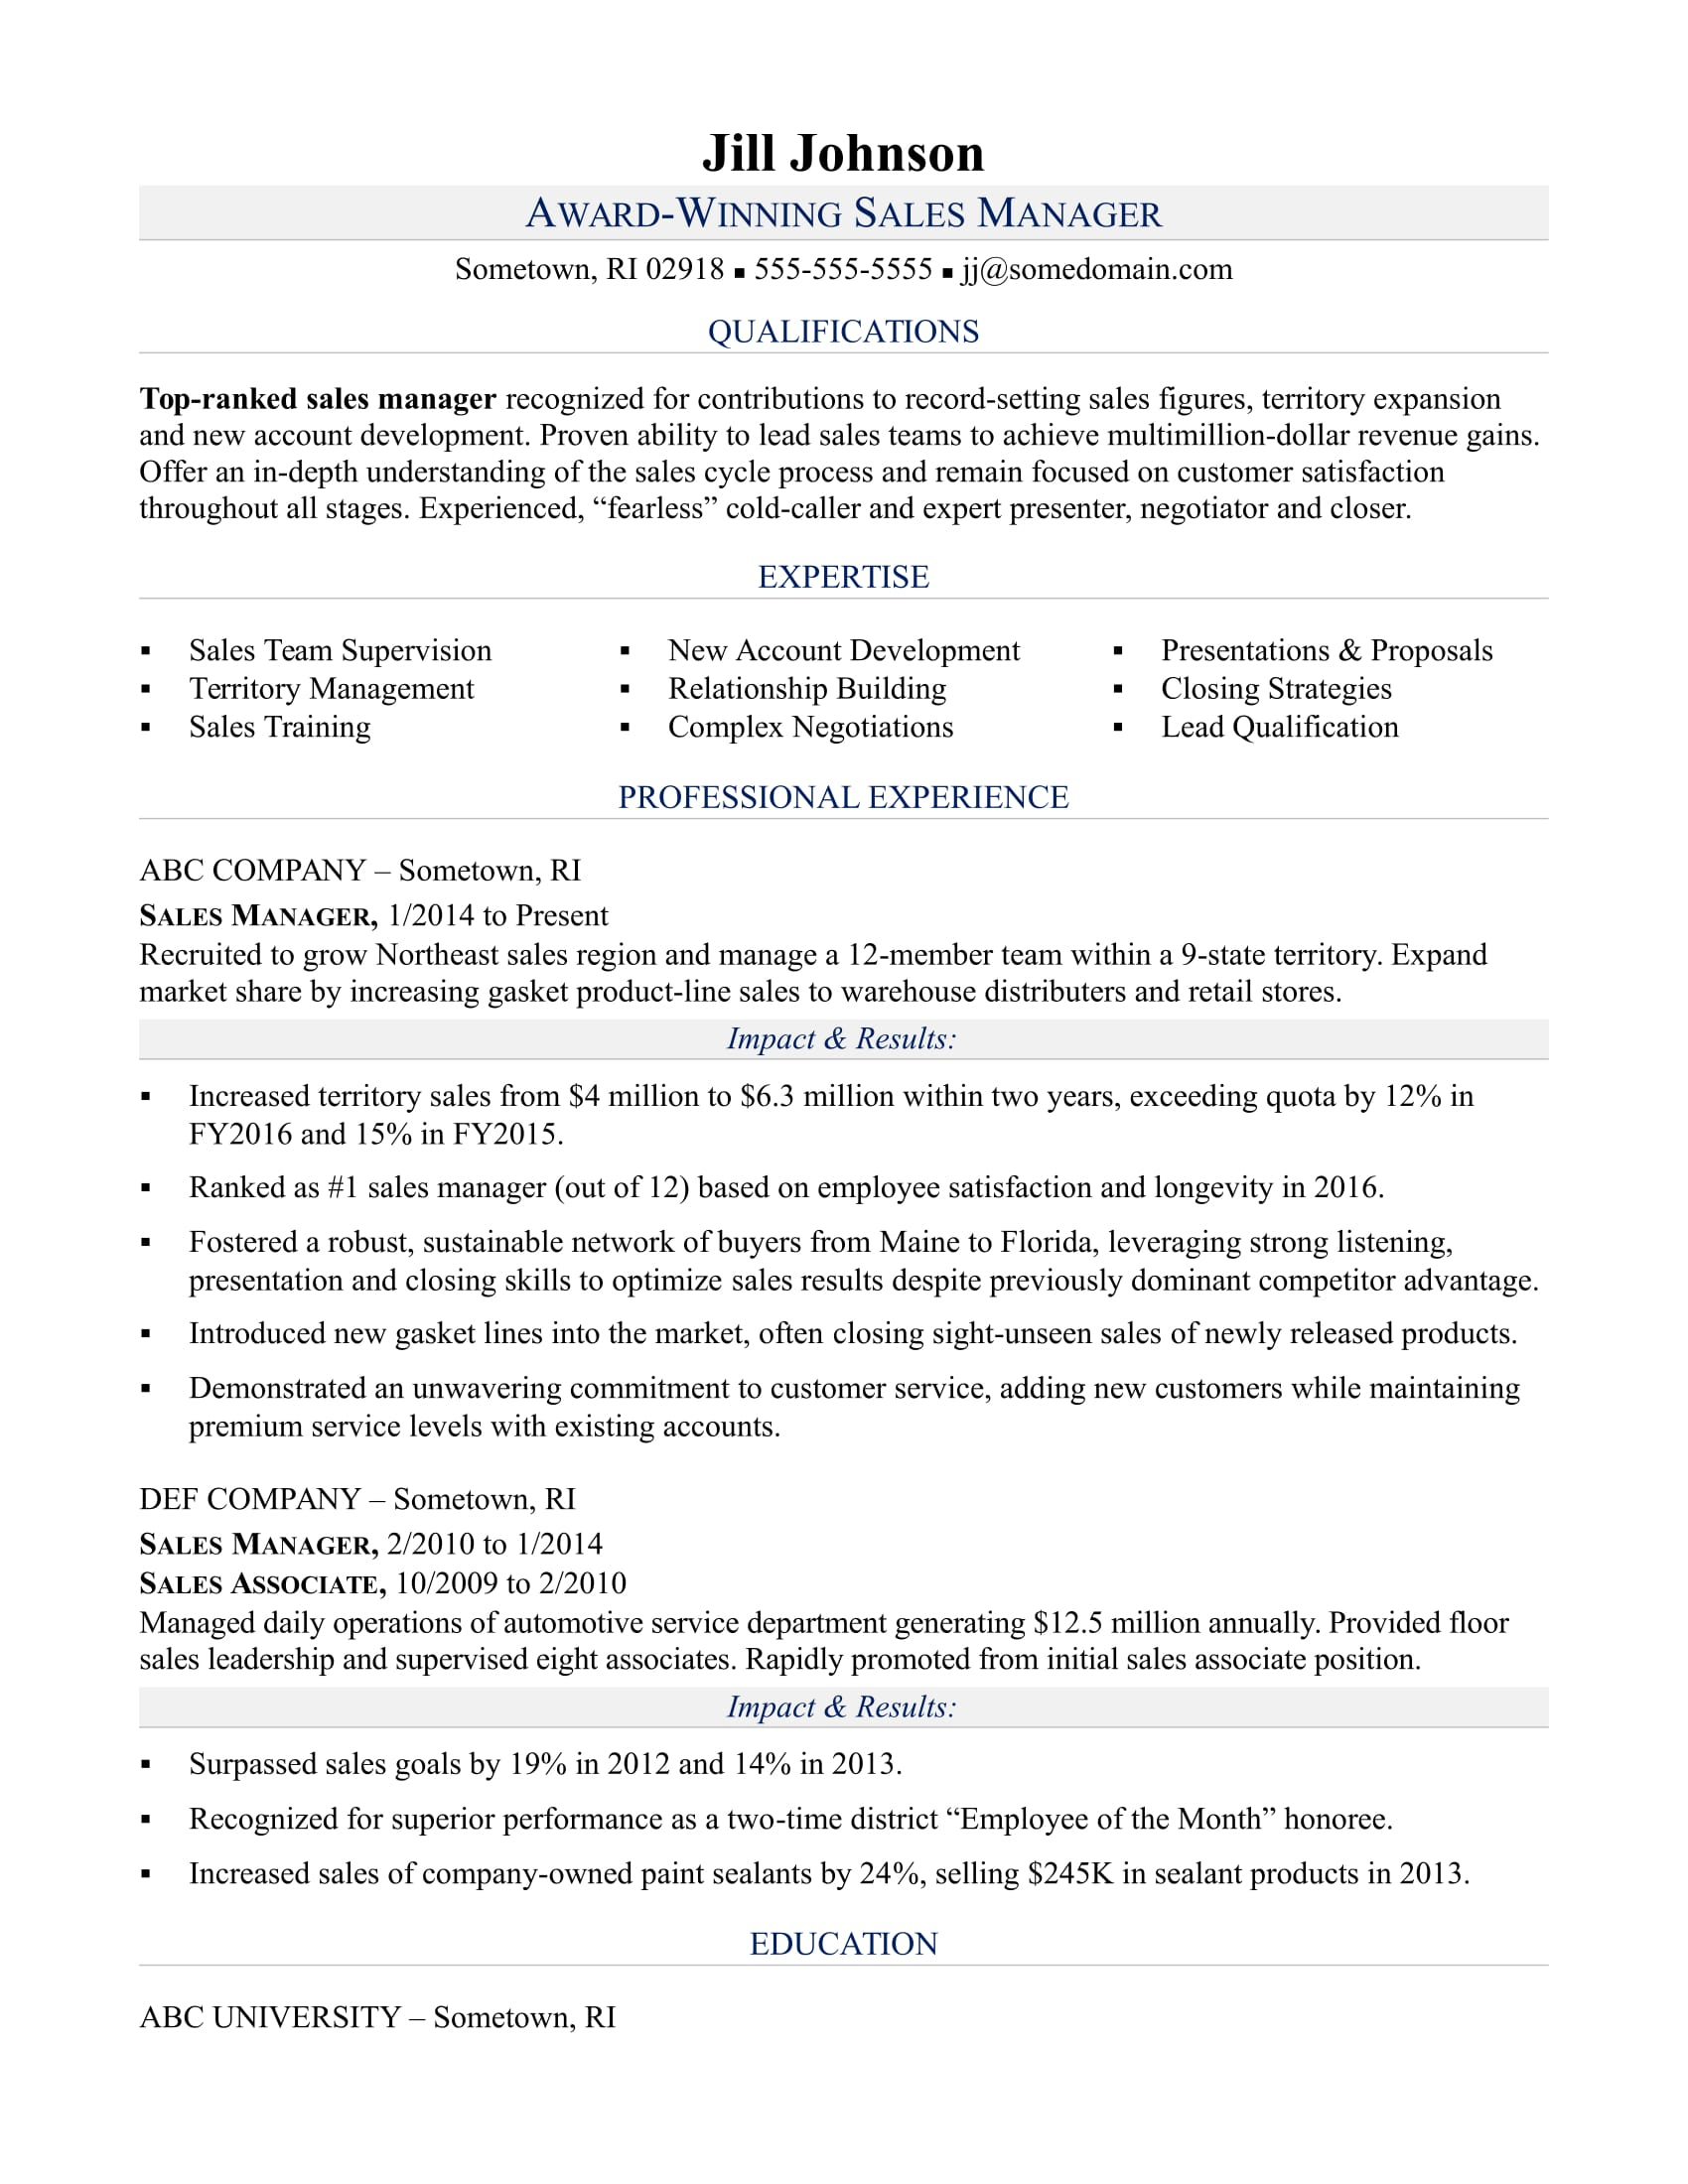 Superb Sample Resume For A Sales Manager And Sample Sales Manager Resume